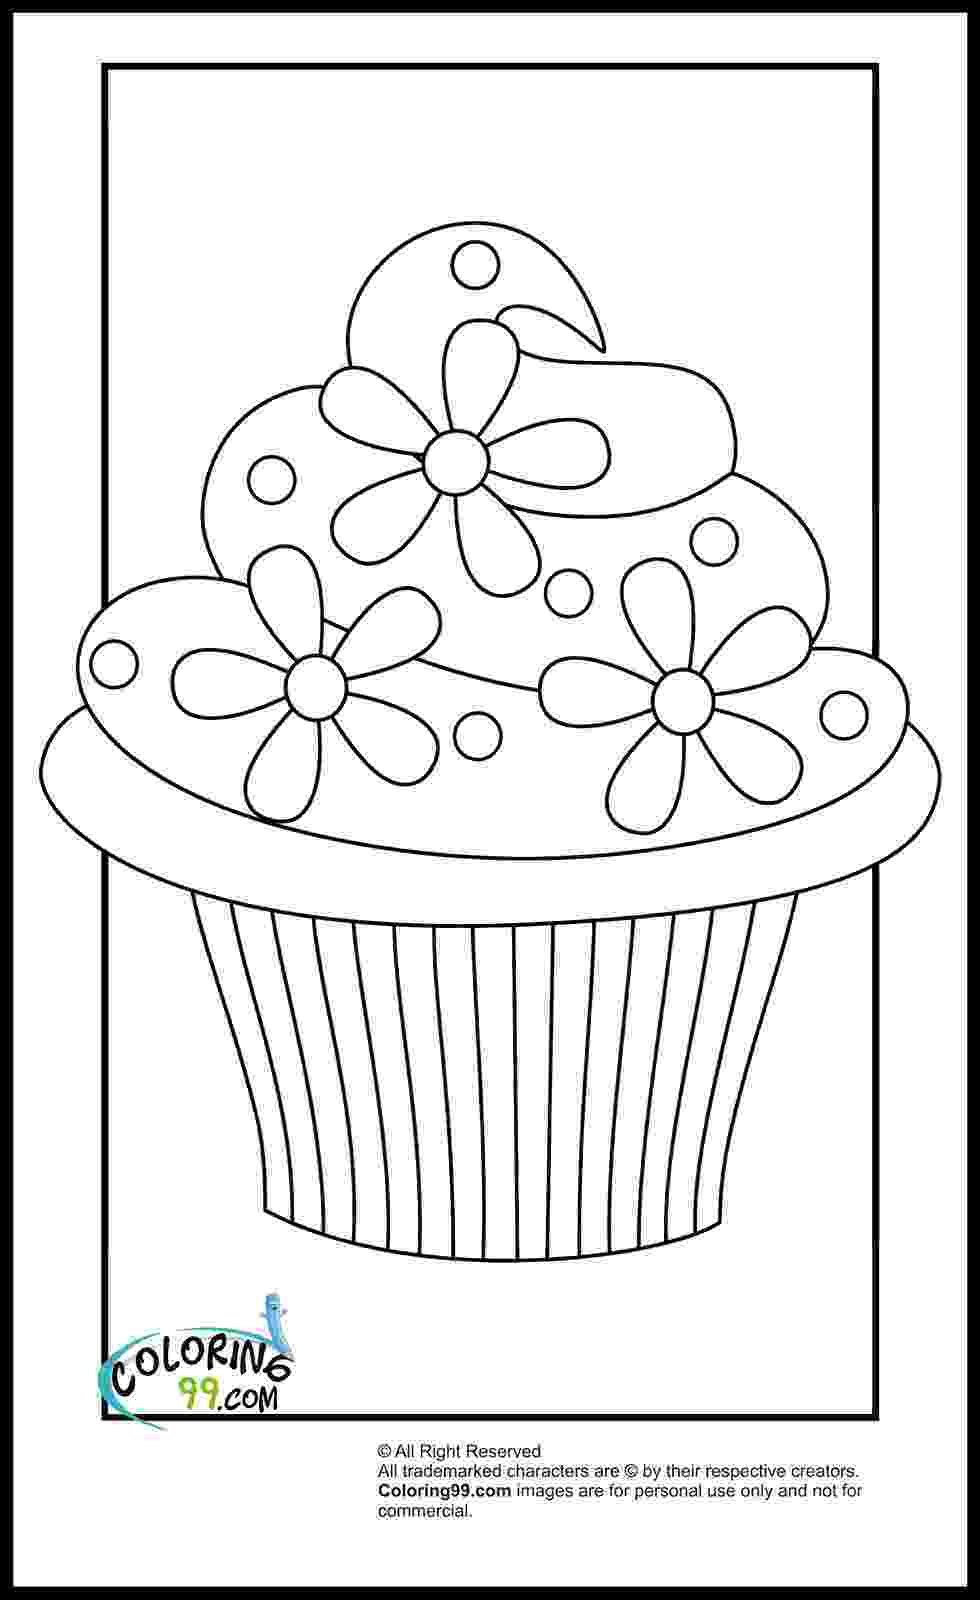 colouring pages cupcakes cupcake coloring pages minister coloring cupcakes pages colouring